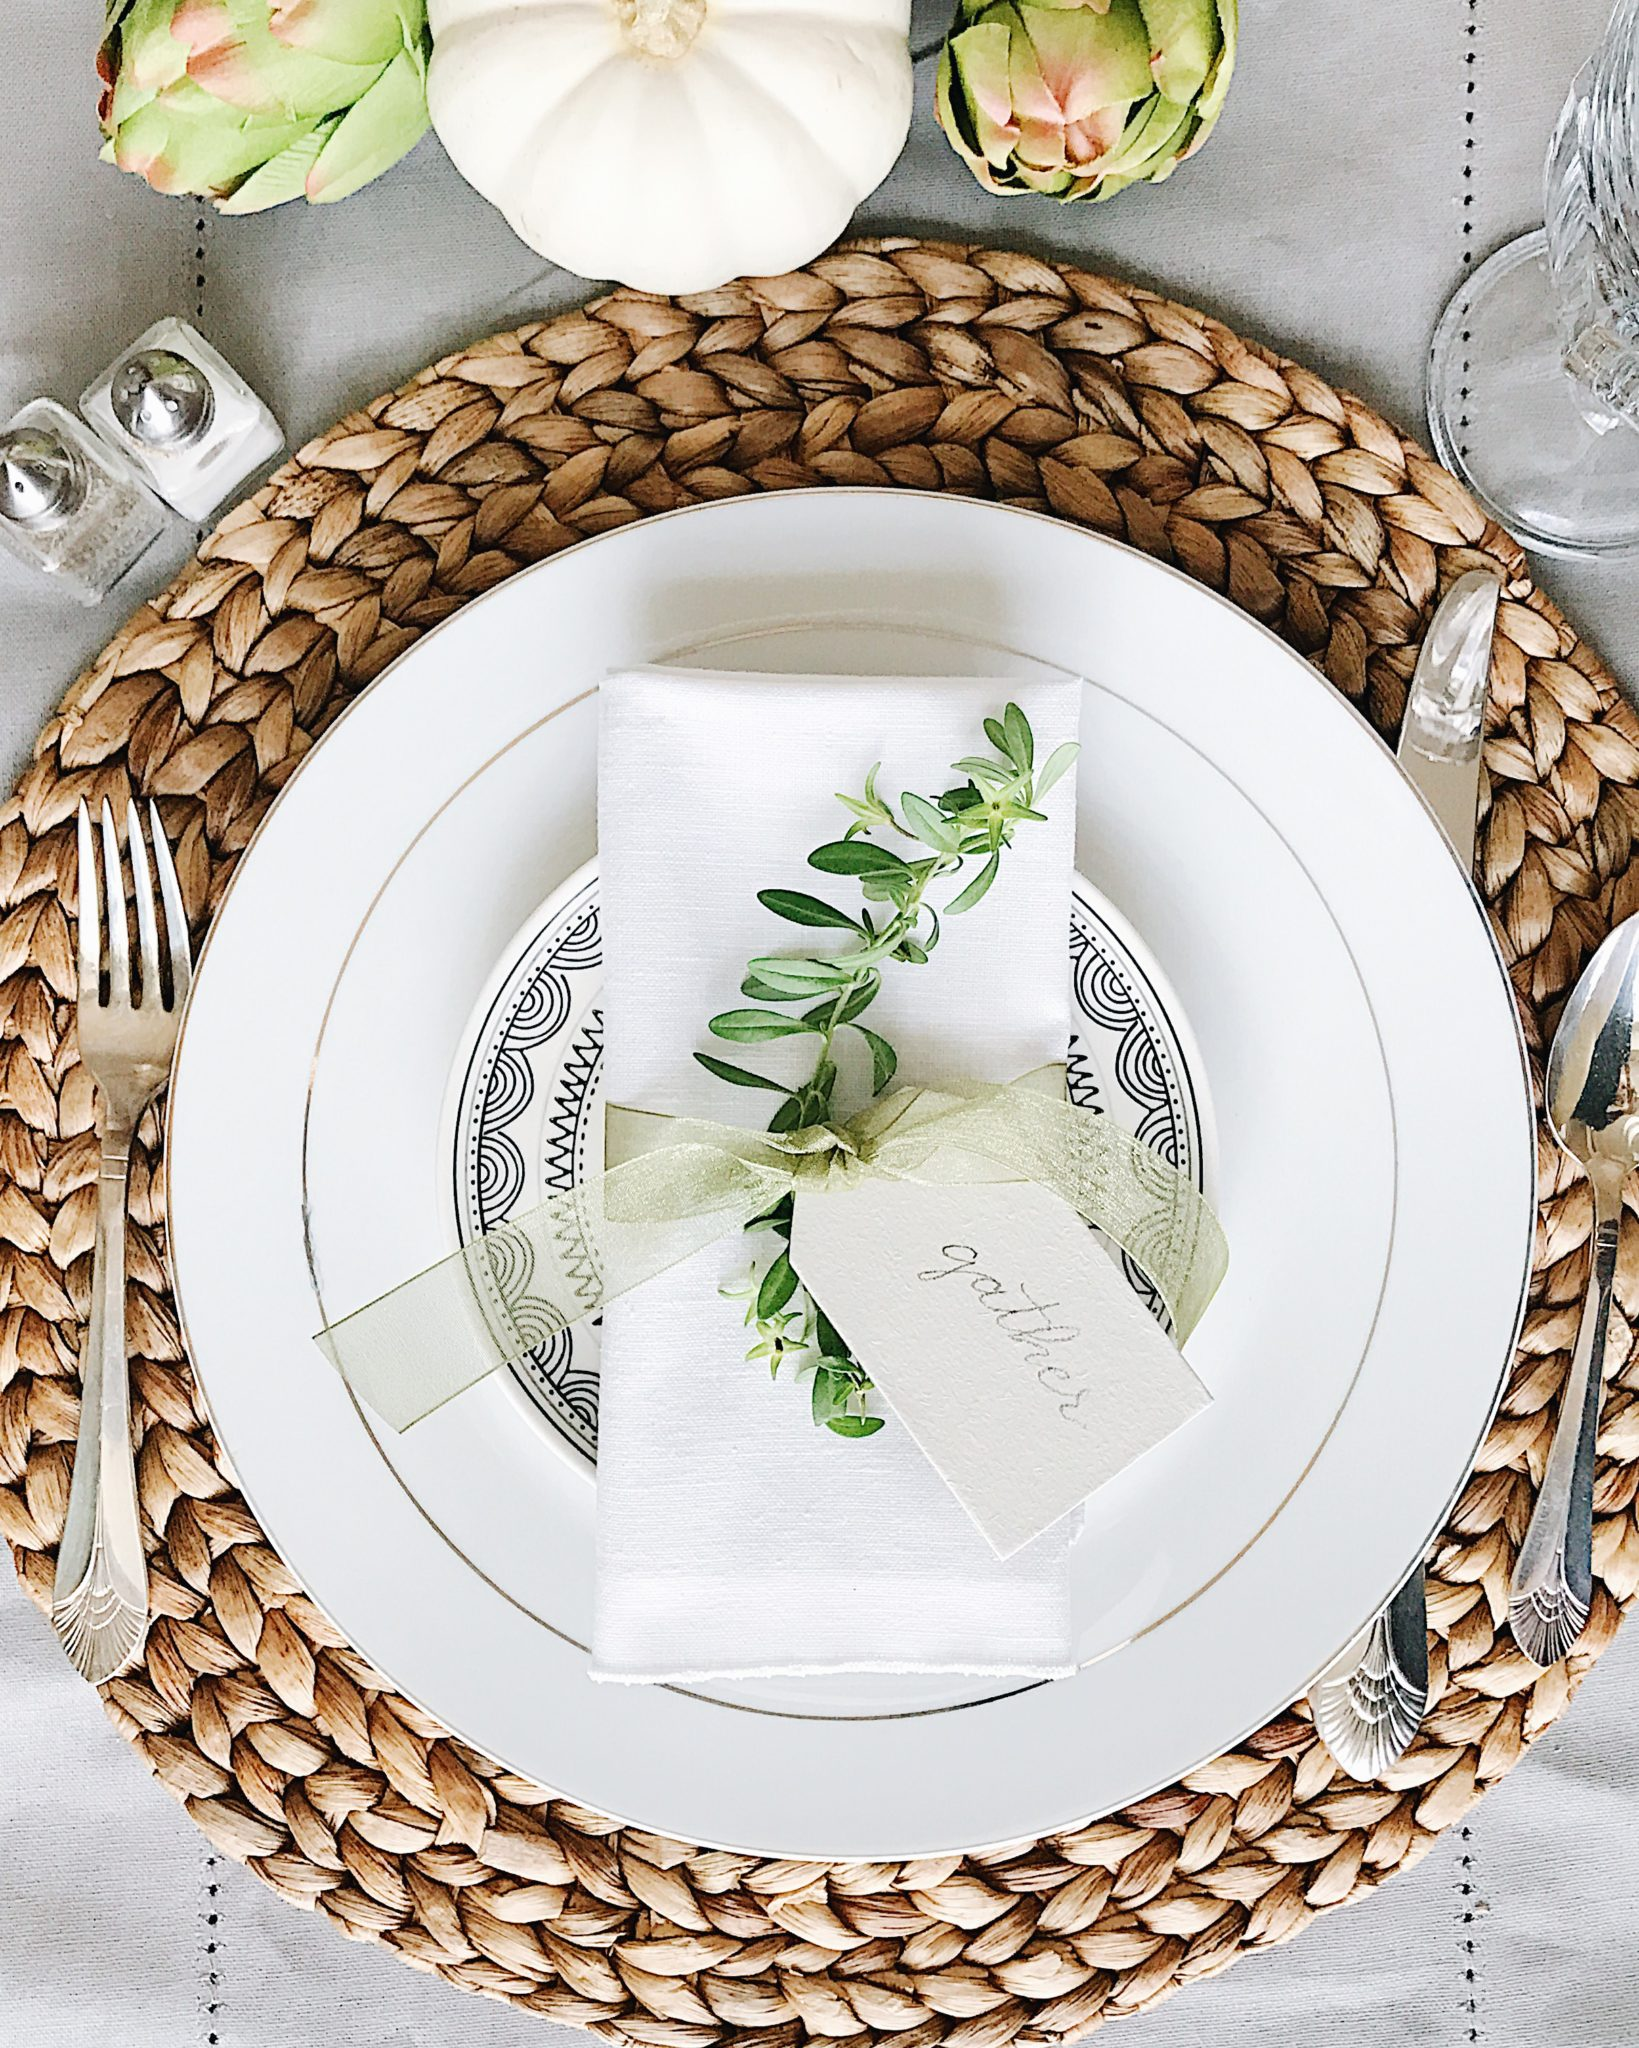 Beautifully simple Thanksgiving table setting ideas  sc 1 st  Jane at Home & 16 Beautifully Simple Thanksgiving Table Setting Ideas - jane at home